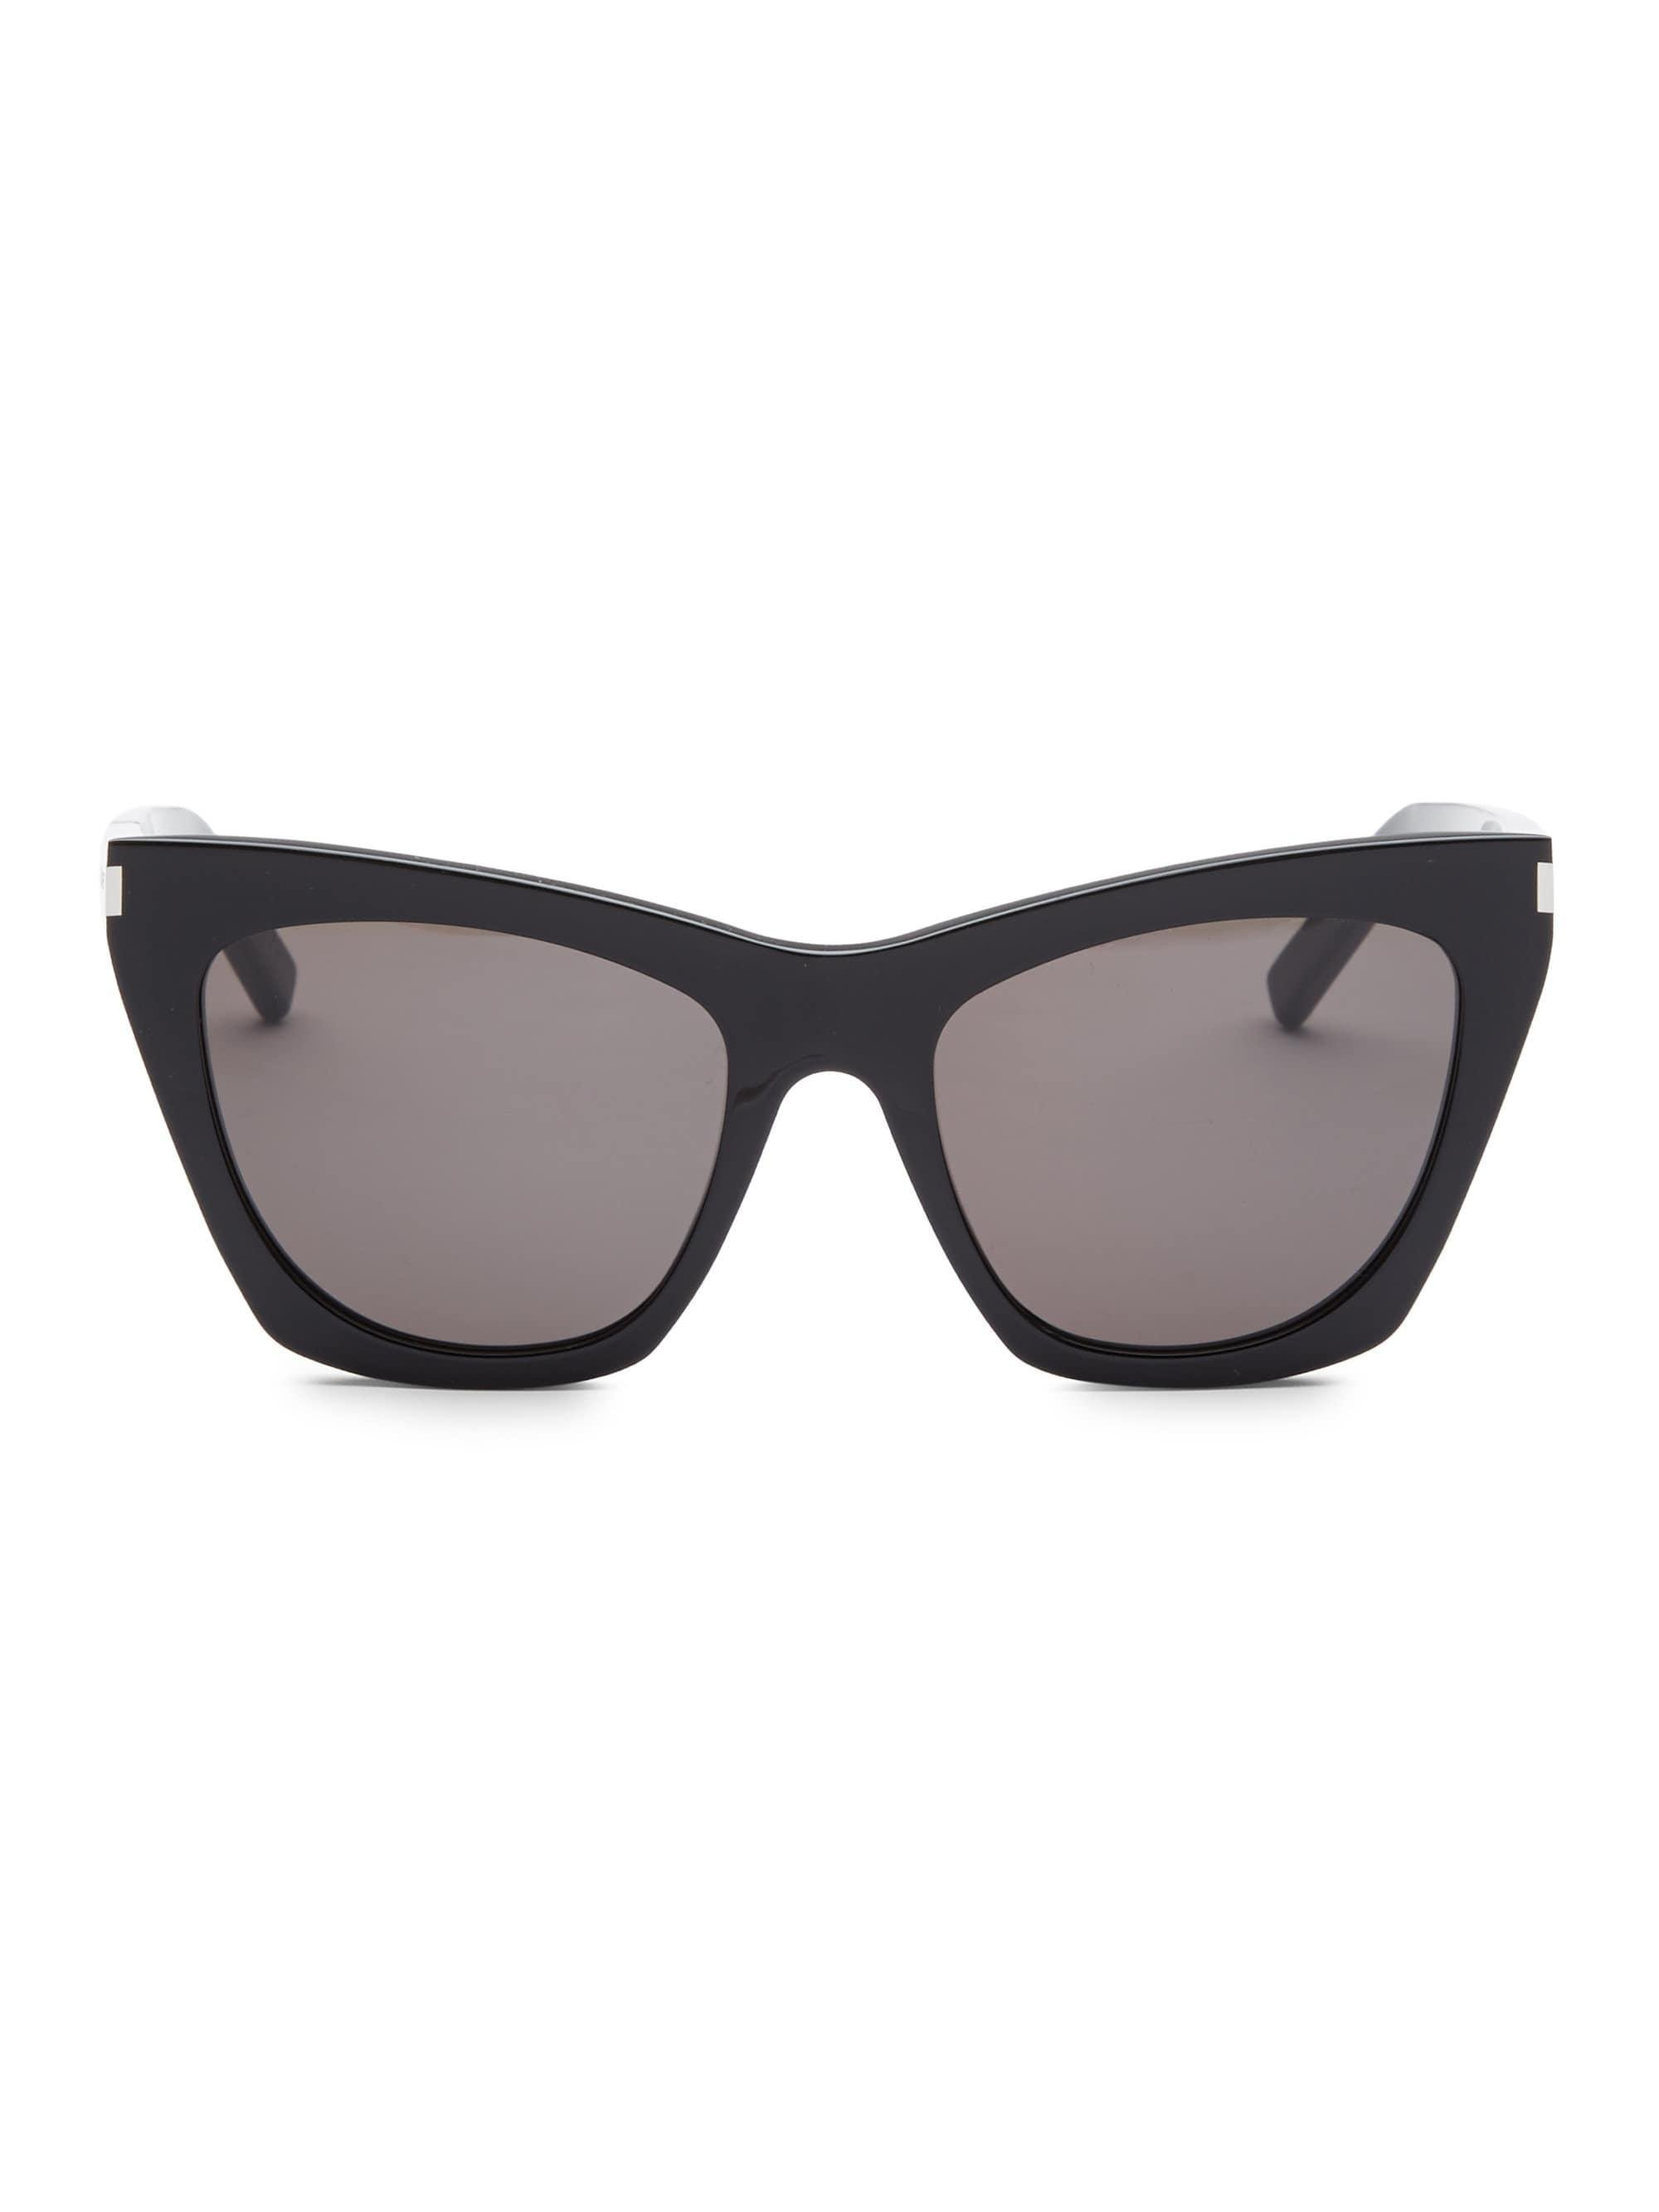 78854bca06 Saint Laurent 55mm New Wave 214 Kate Sunglasses in Black - Lyst